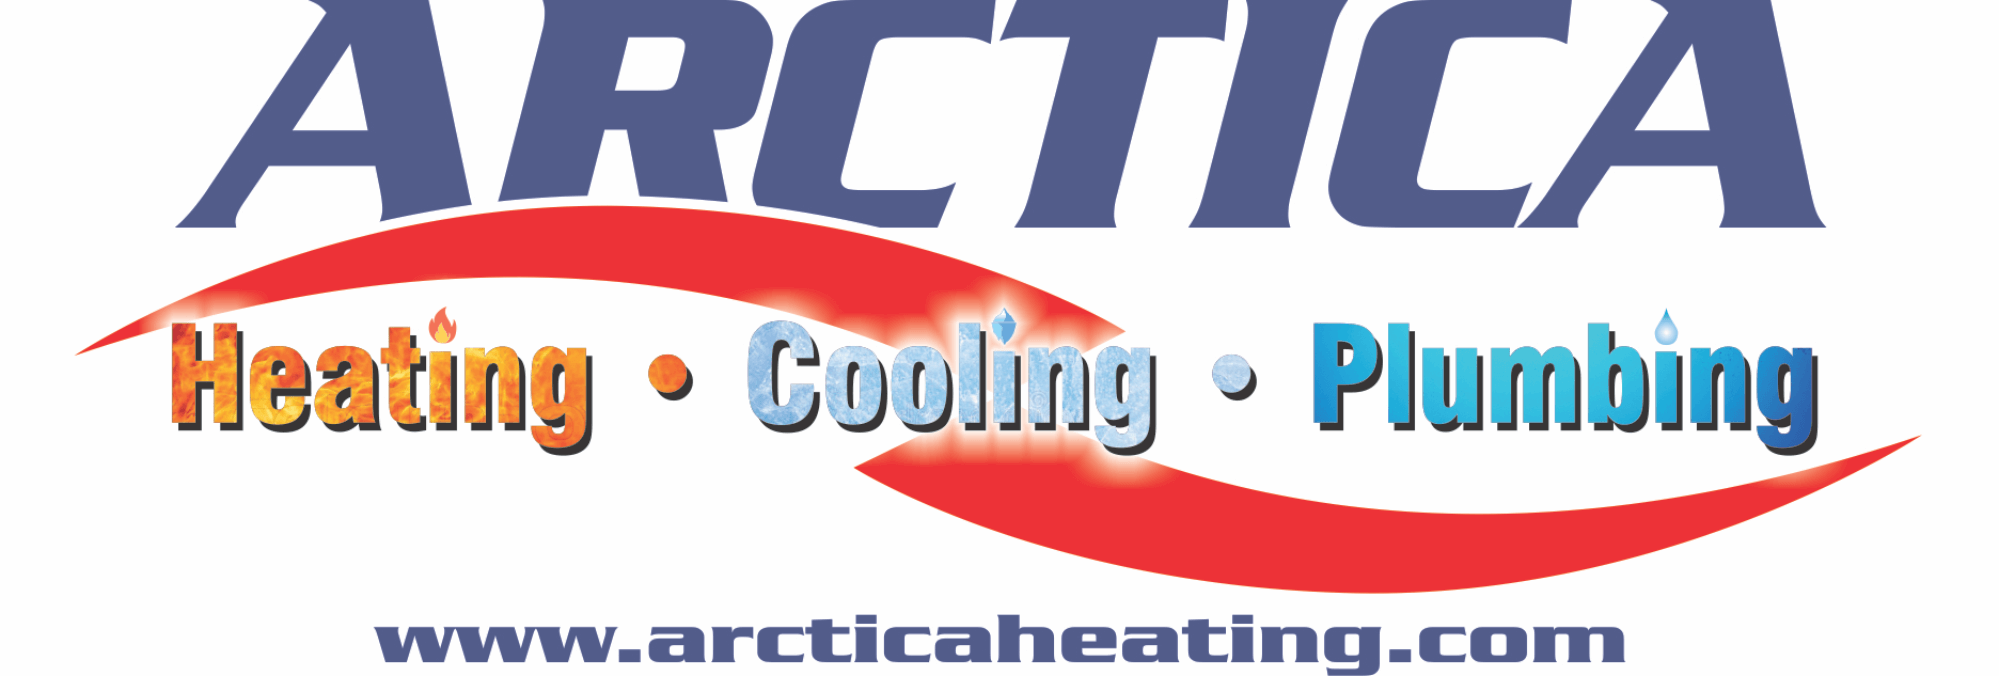 Arctica Heating and Cooling Logo Design, website design, Branding, Marketing, Website Maintenance and Hosting